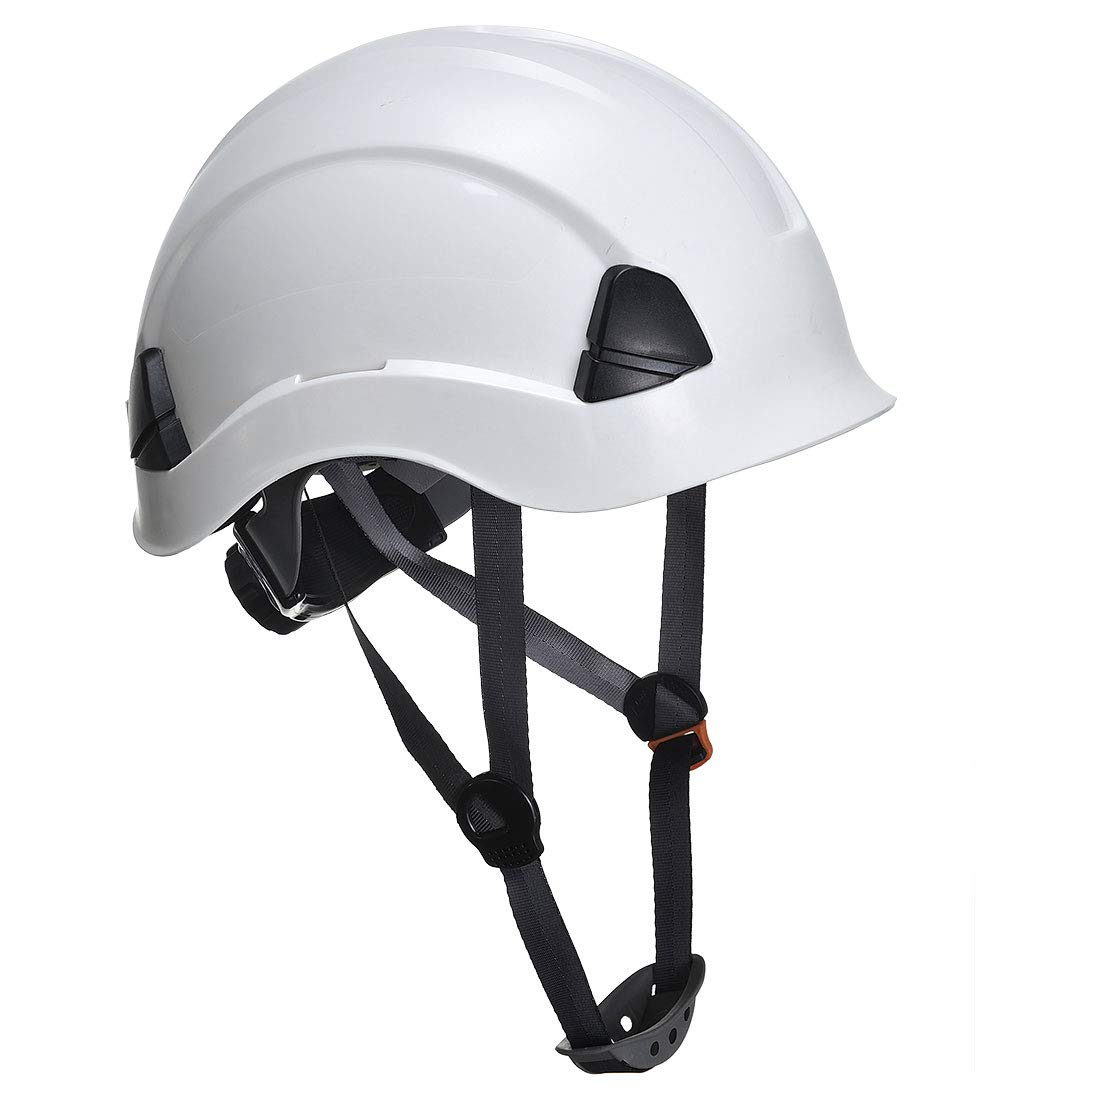 Portwest PS53 Height Endurance PPE Work Hard Hat in Protective HiVis Colors ANSI, White